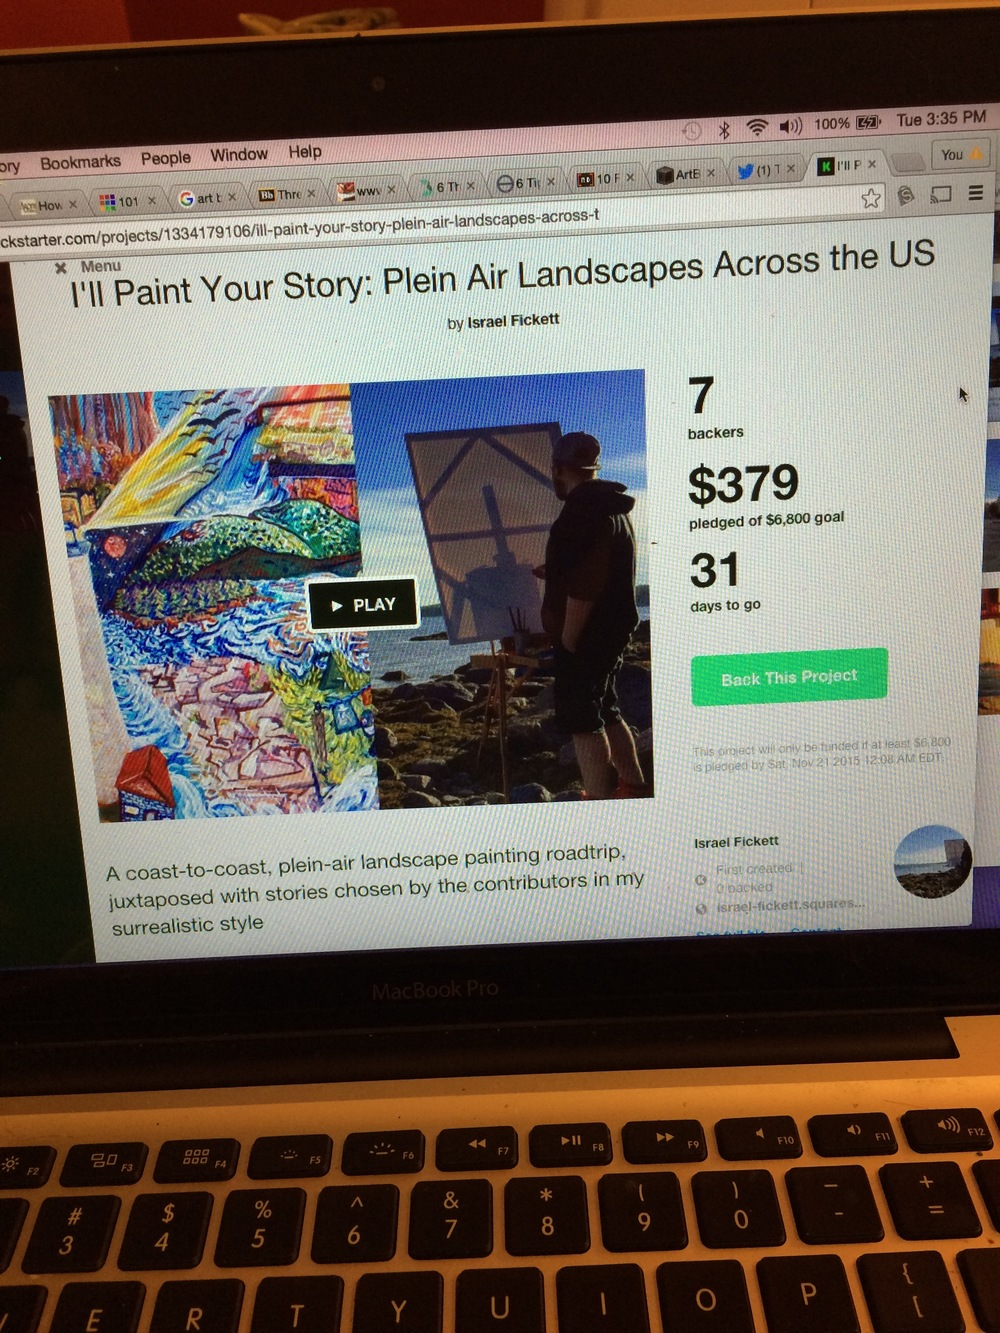 My Kickstarter Campaign: Day two! Already raised $379!! Let's keep it going!